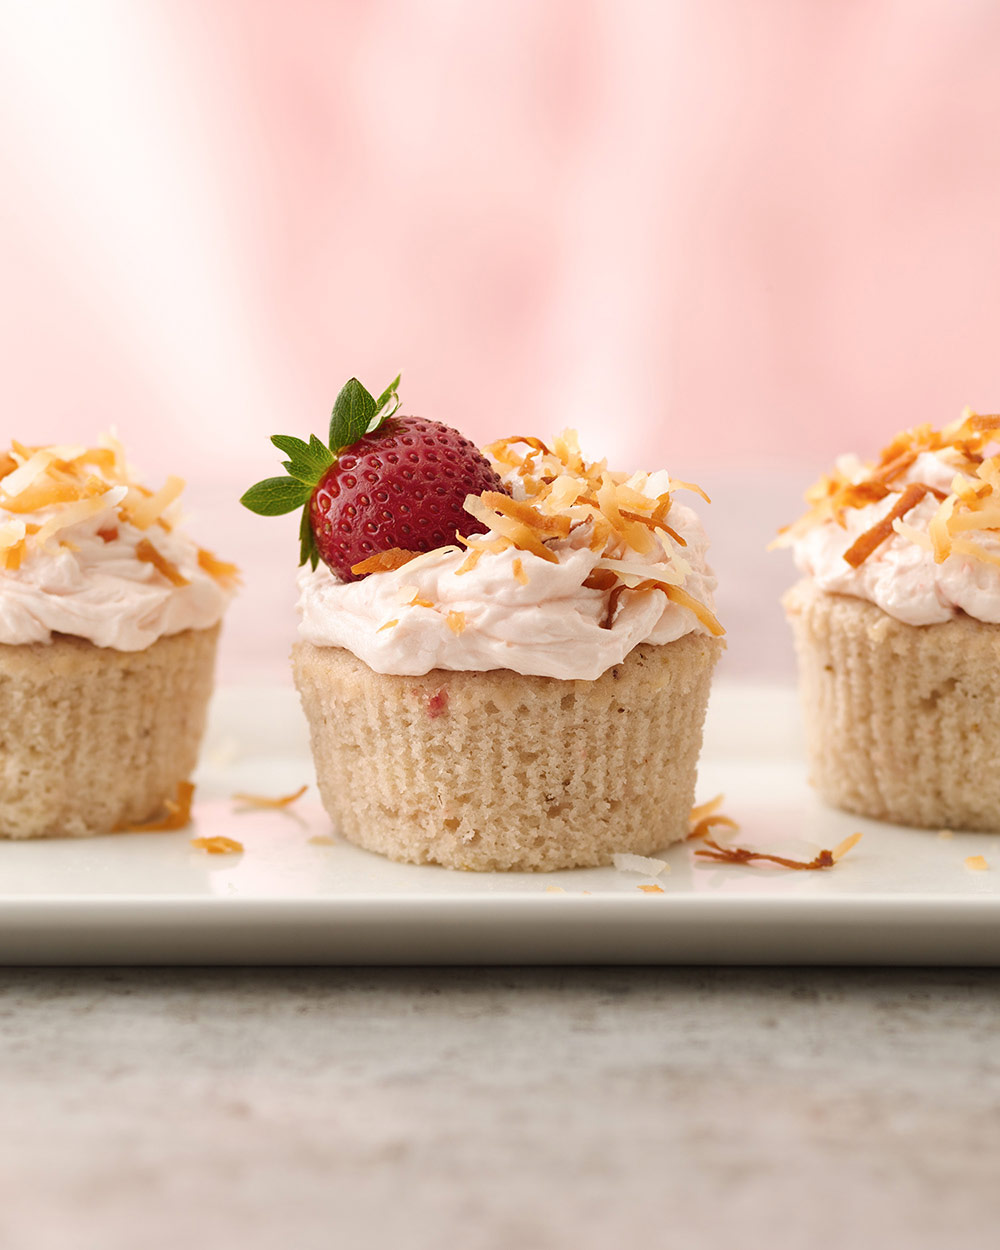 StrawberryCoconutCupcake.jpg